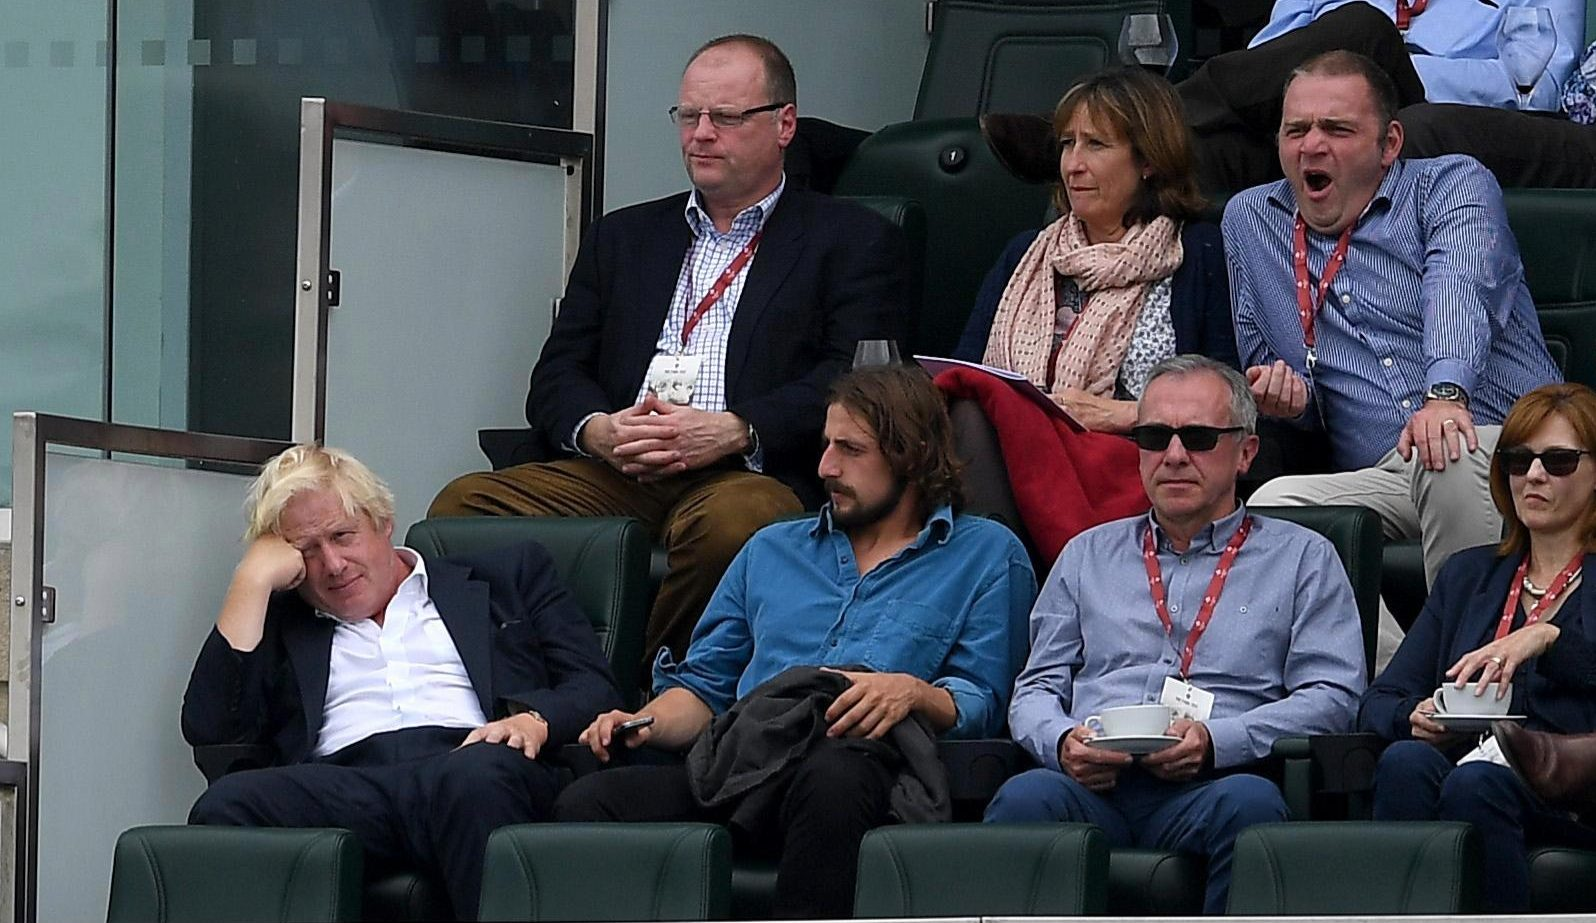 BoJo was shown looking shattered in the stands